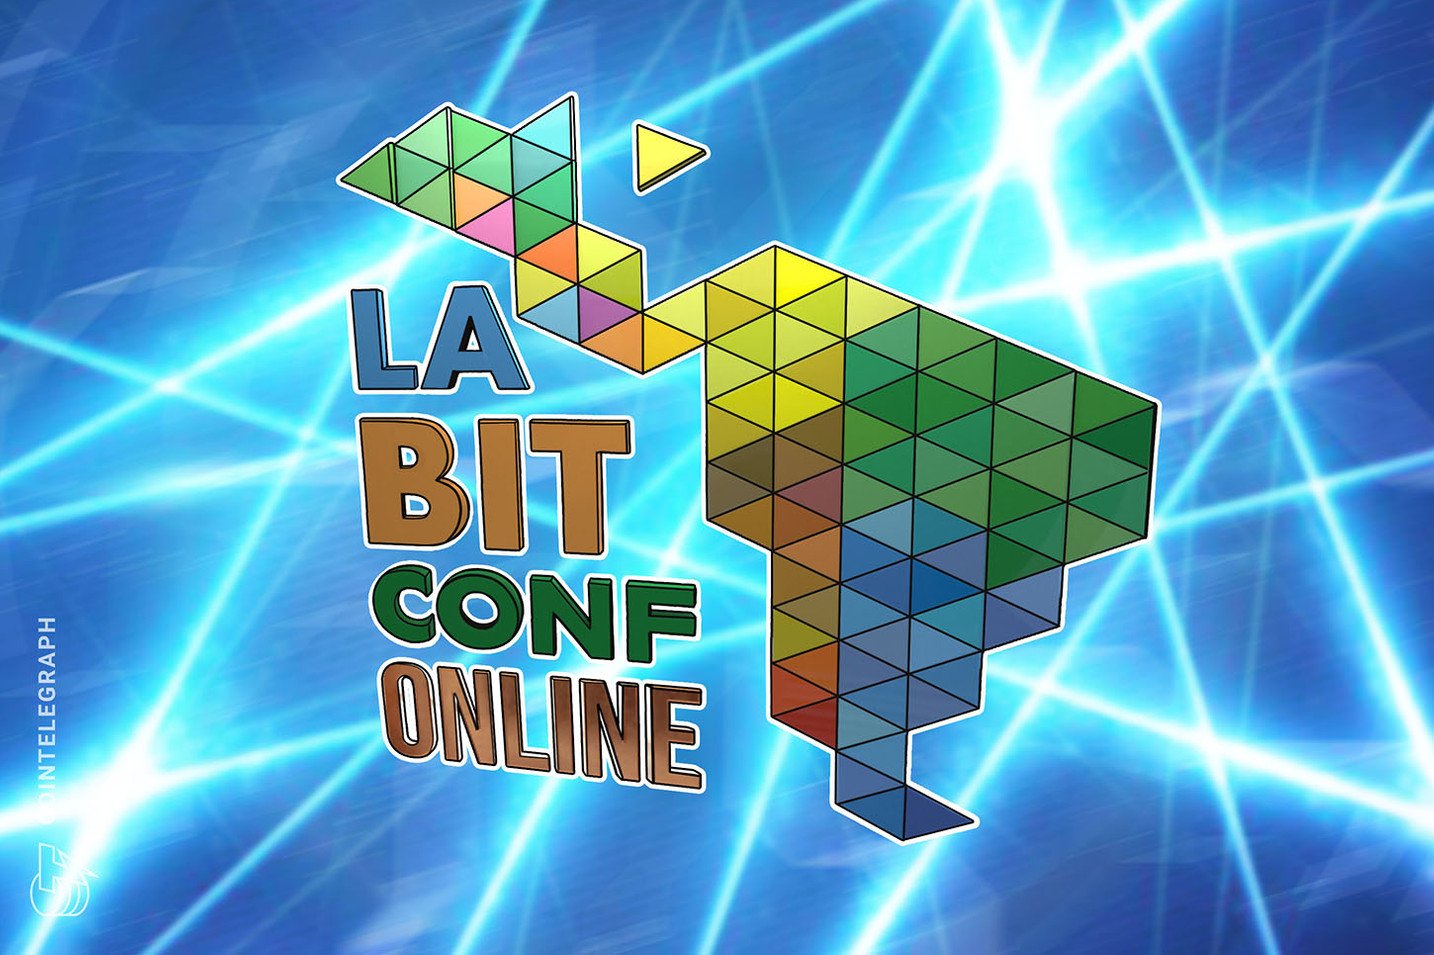 LABITCONF gathers leaders at one-of-a-kind digital experience, Dec 7-12